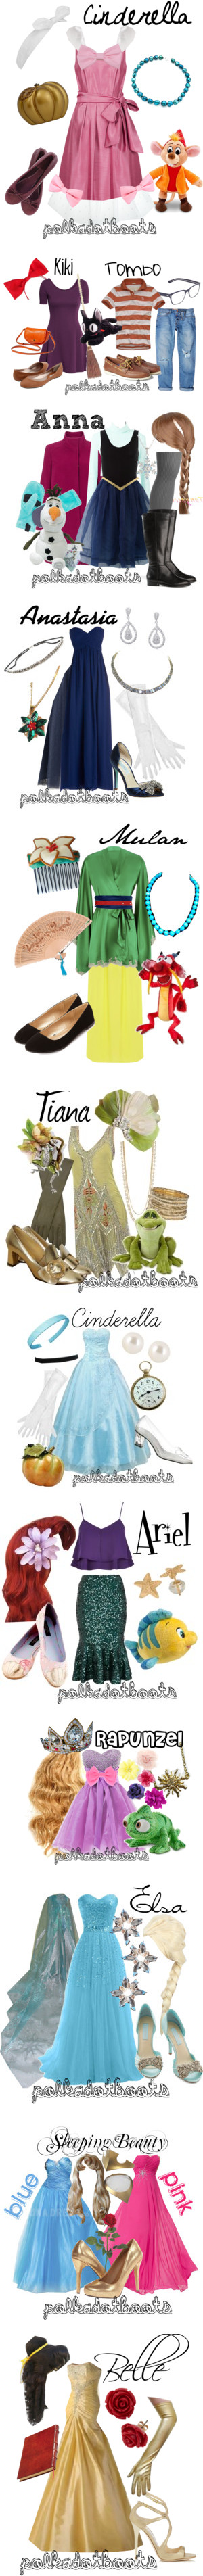 Disney Halloween Costumes by polkadotboots on Polyvore featuring M&S, Pearlyta, Dorothy Perkins, Swamp, Timmy Woods, J.Crew, women's clothing, women's fashion, women and female